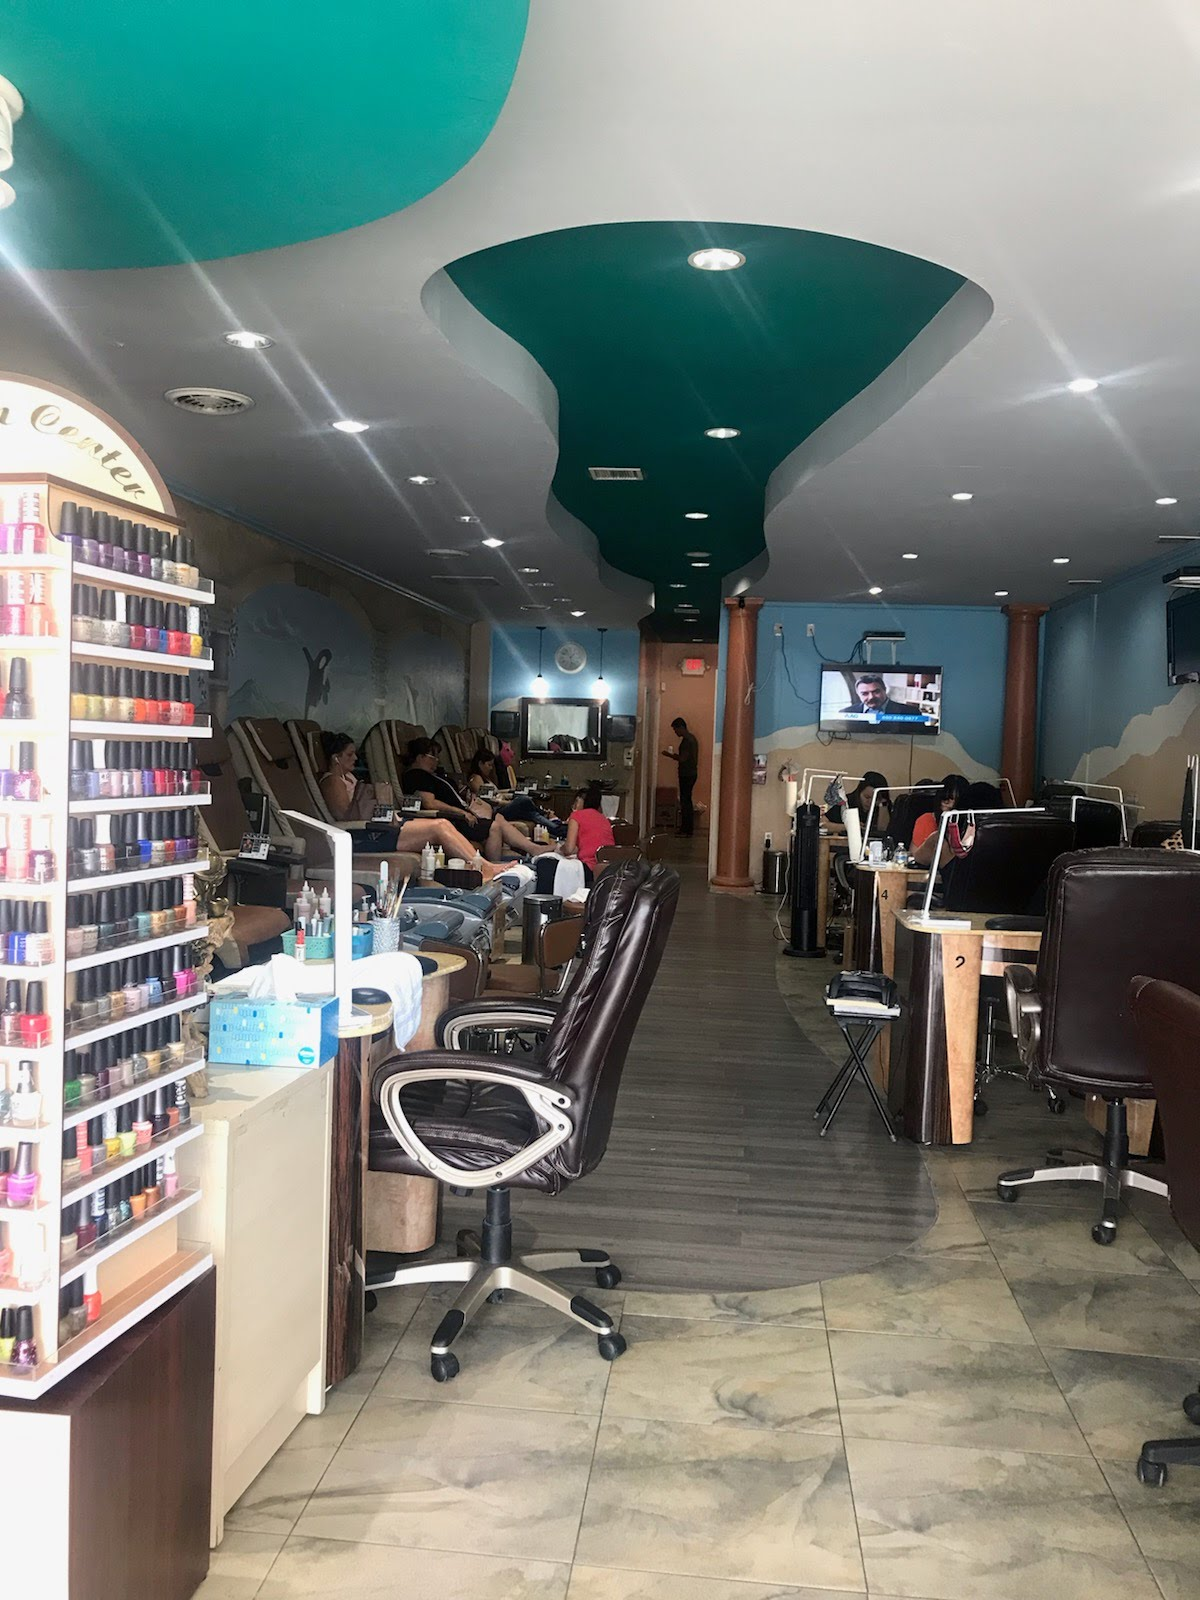 HAPPY NAILS - 4411 San Mateo Blvd NE Ste F, Albuquerque, NM